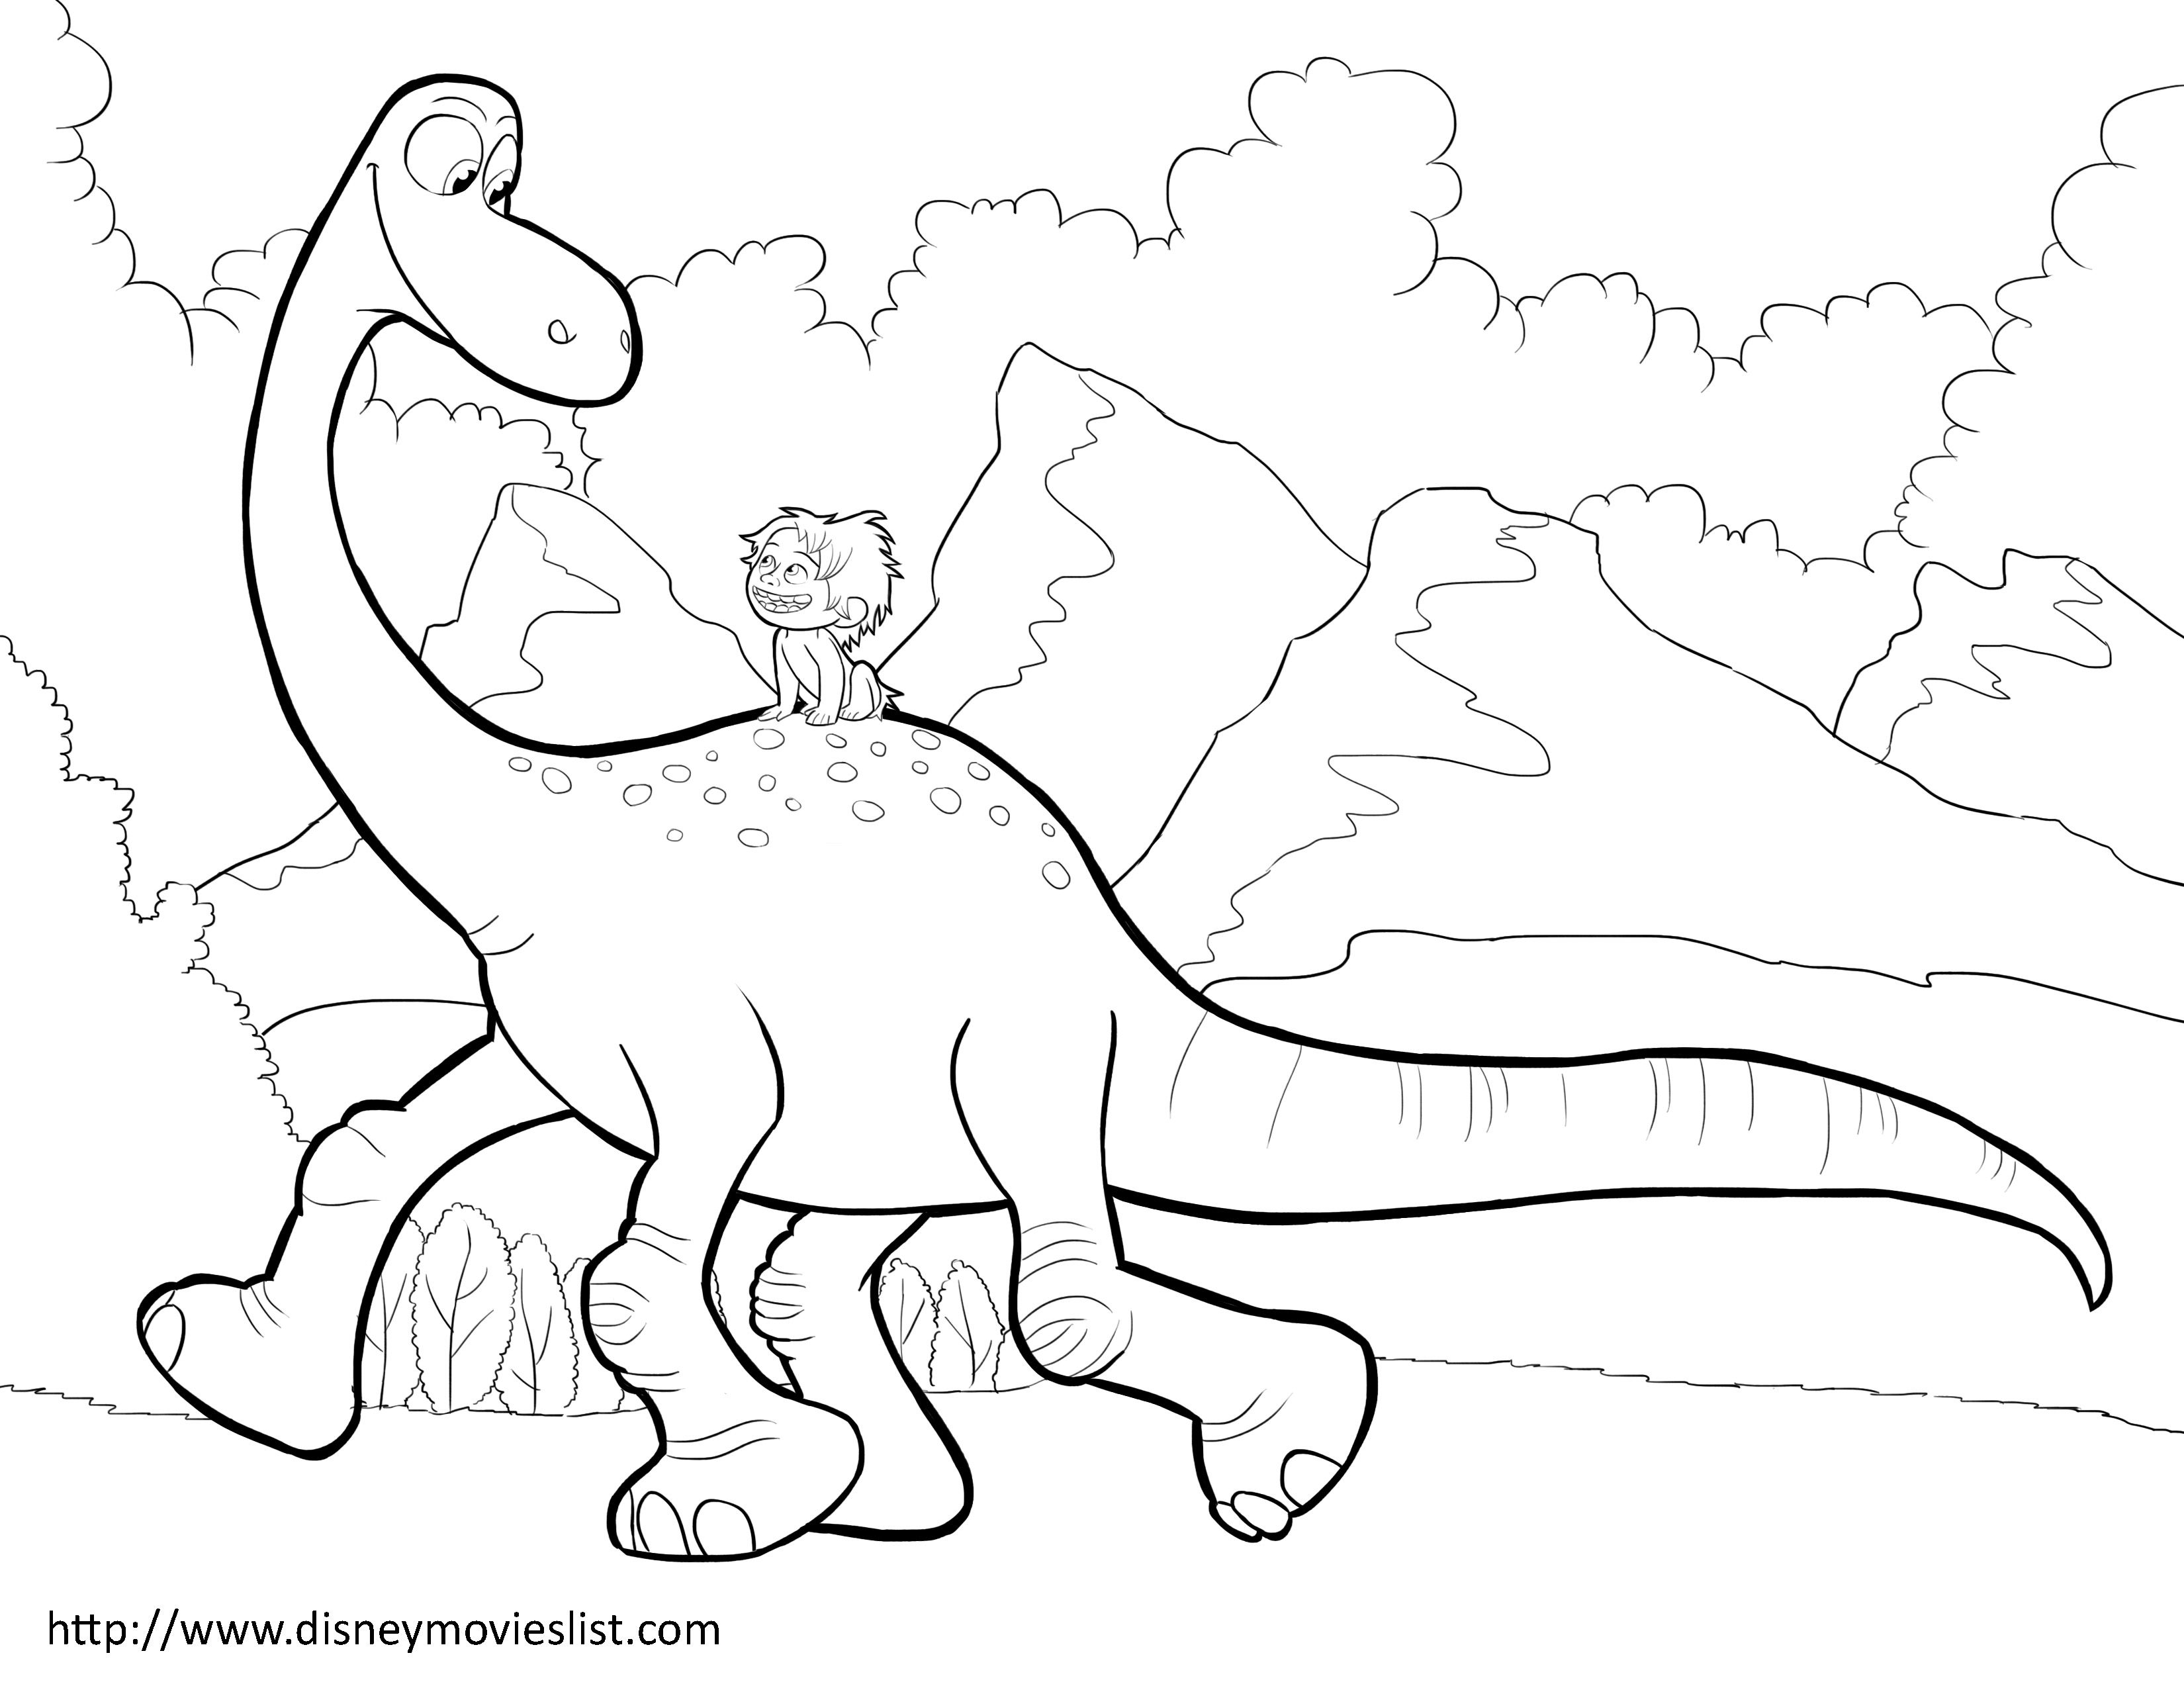 Coloring Pages About Dinosaurs Coloring Pages